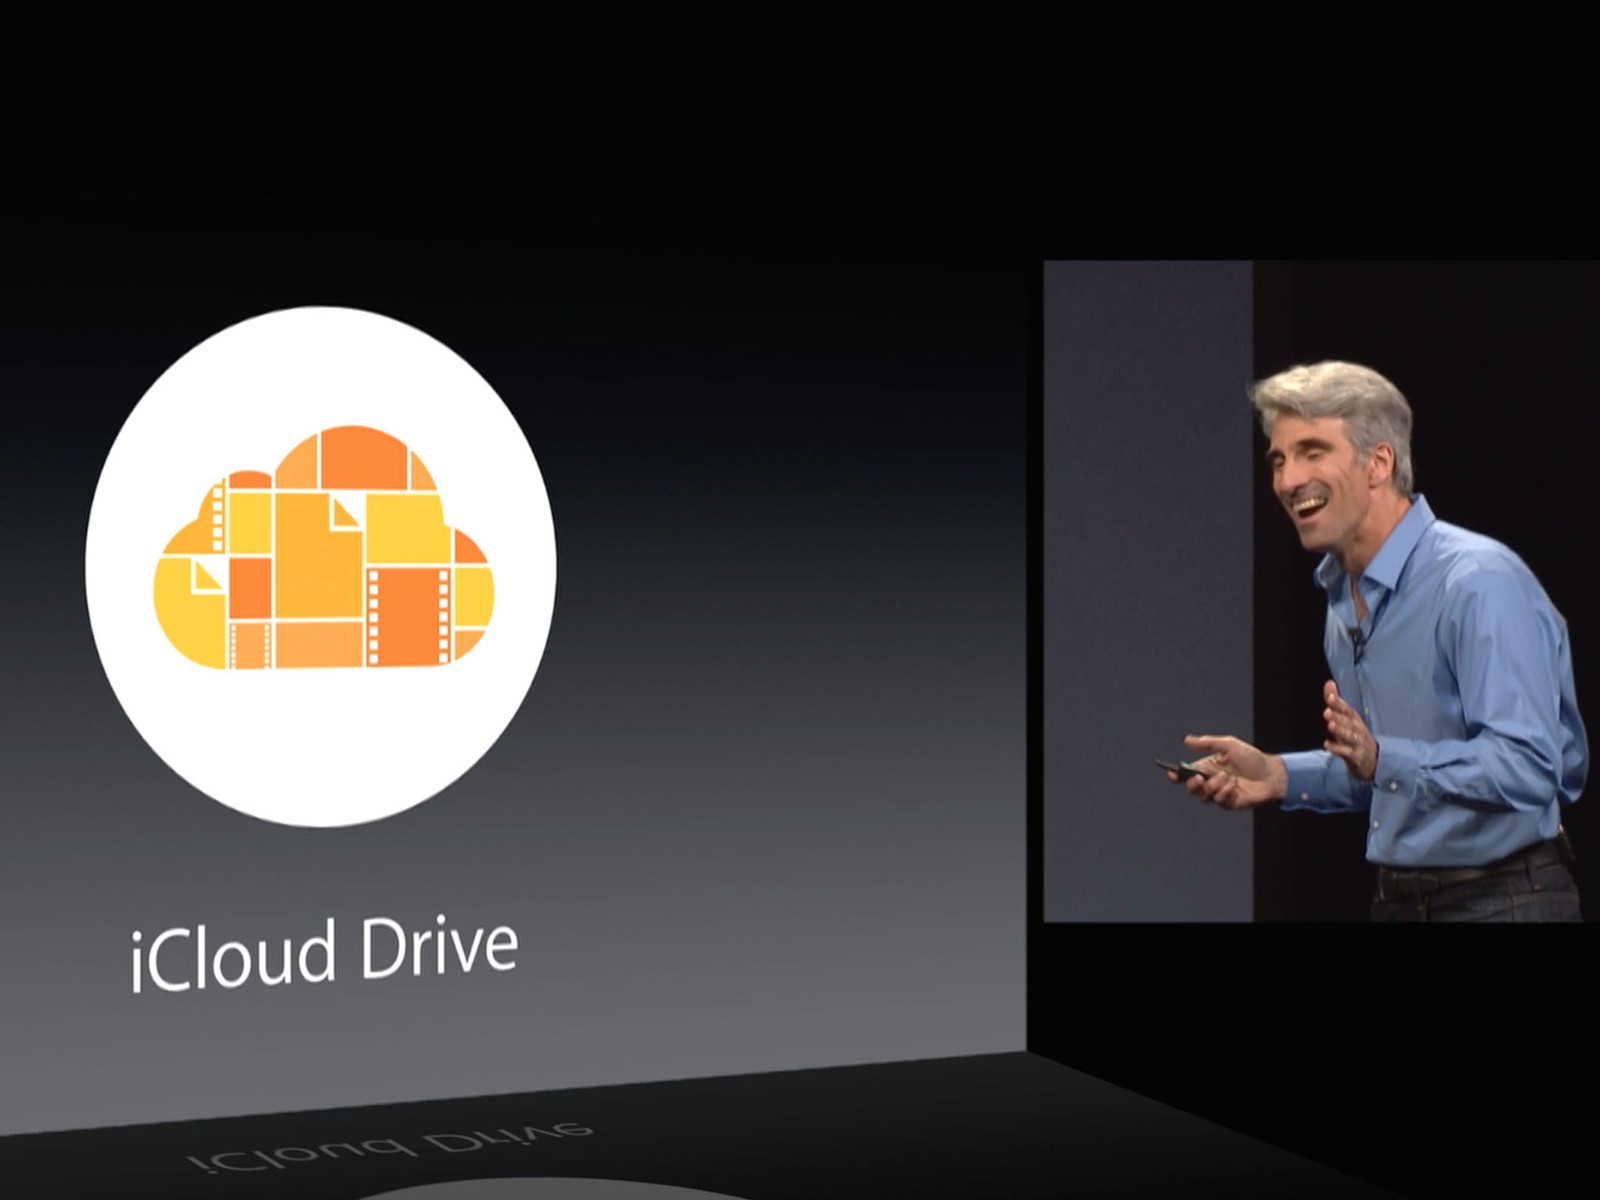 OS X Yosemite Cloud Drive: Explained